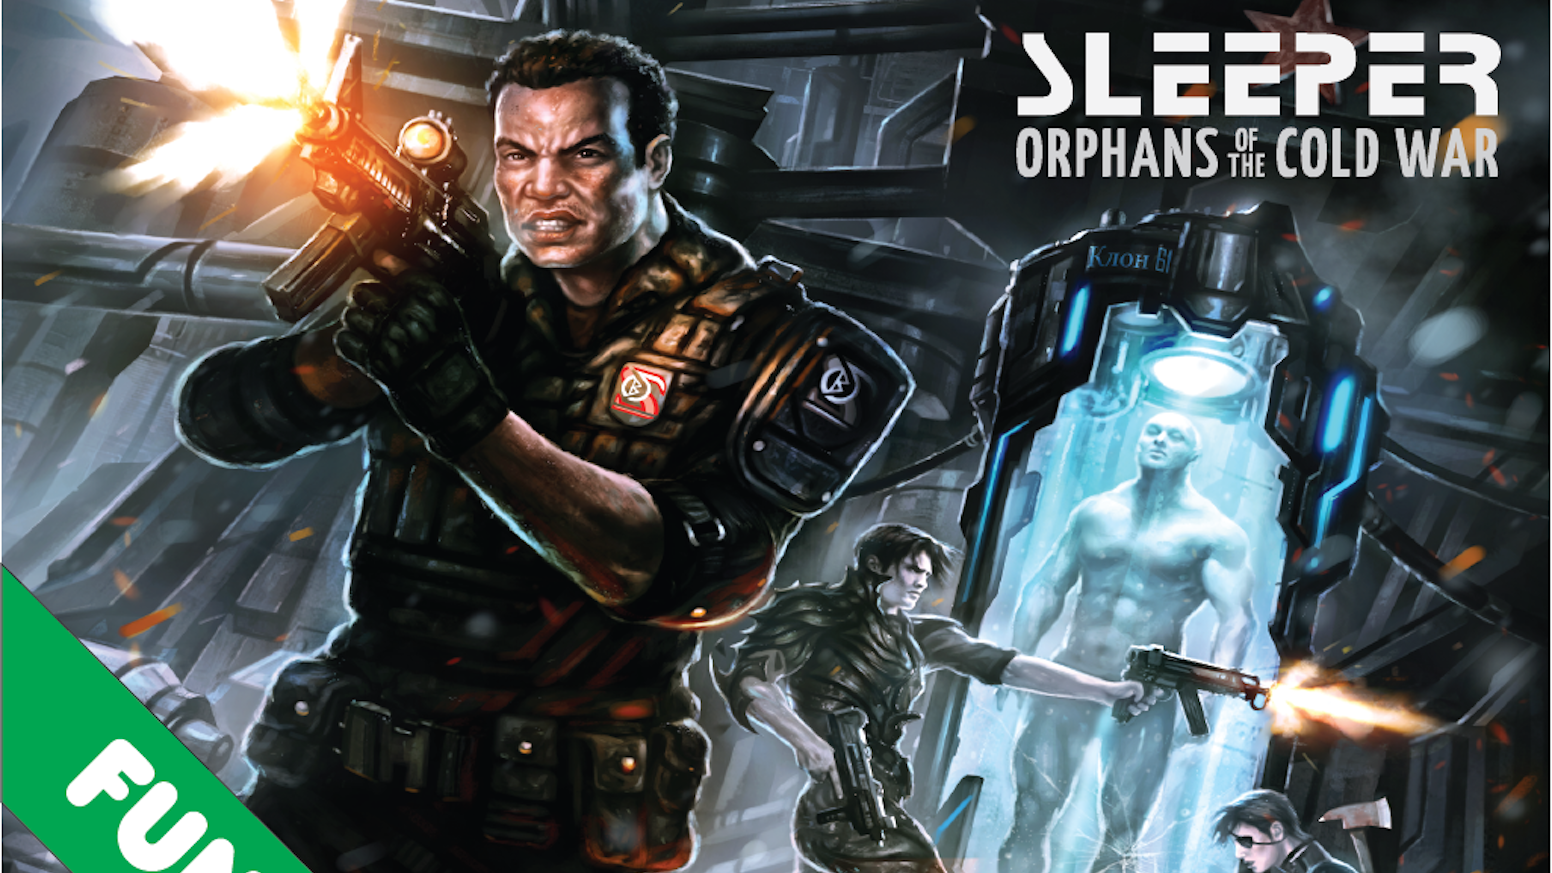 Sleeper RPG: A conspiracy horror tabletop roleplaying game by Tony